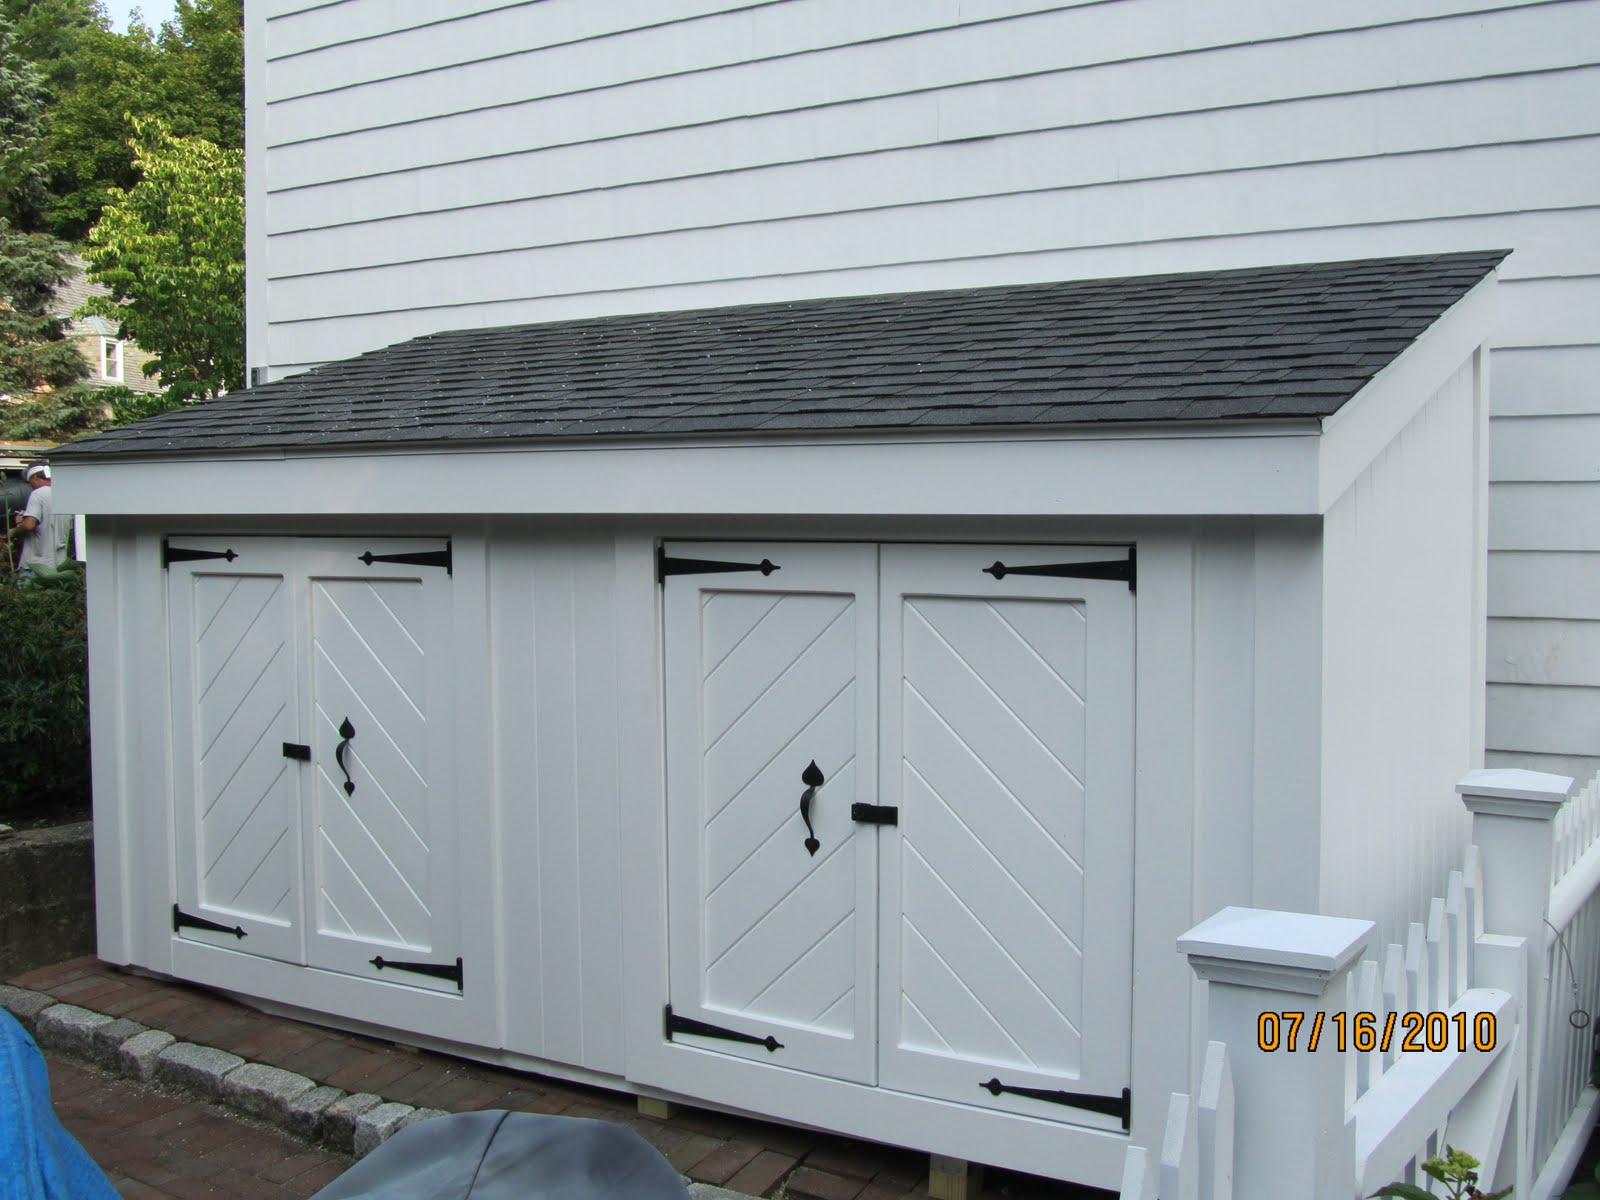 Shed Door Ideas charcoal to soften black and white colour palette kendall charcoal garage doors benjamin moore paint Shed Door Design Ideas Shed Door Design Ideas Shed Craftsman With Storage Shed Storage Shed Storage